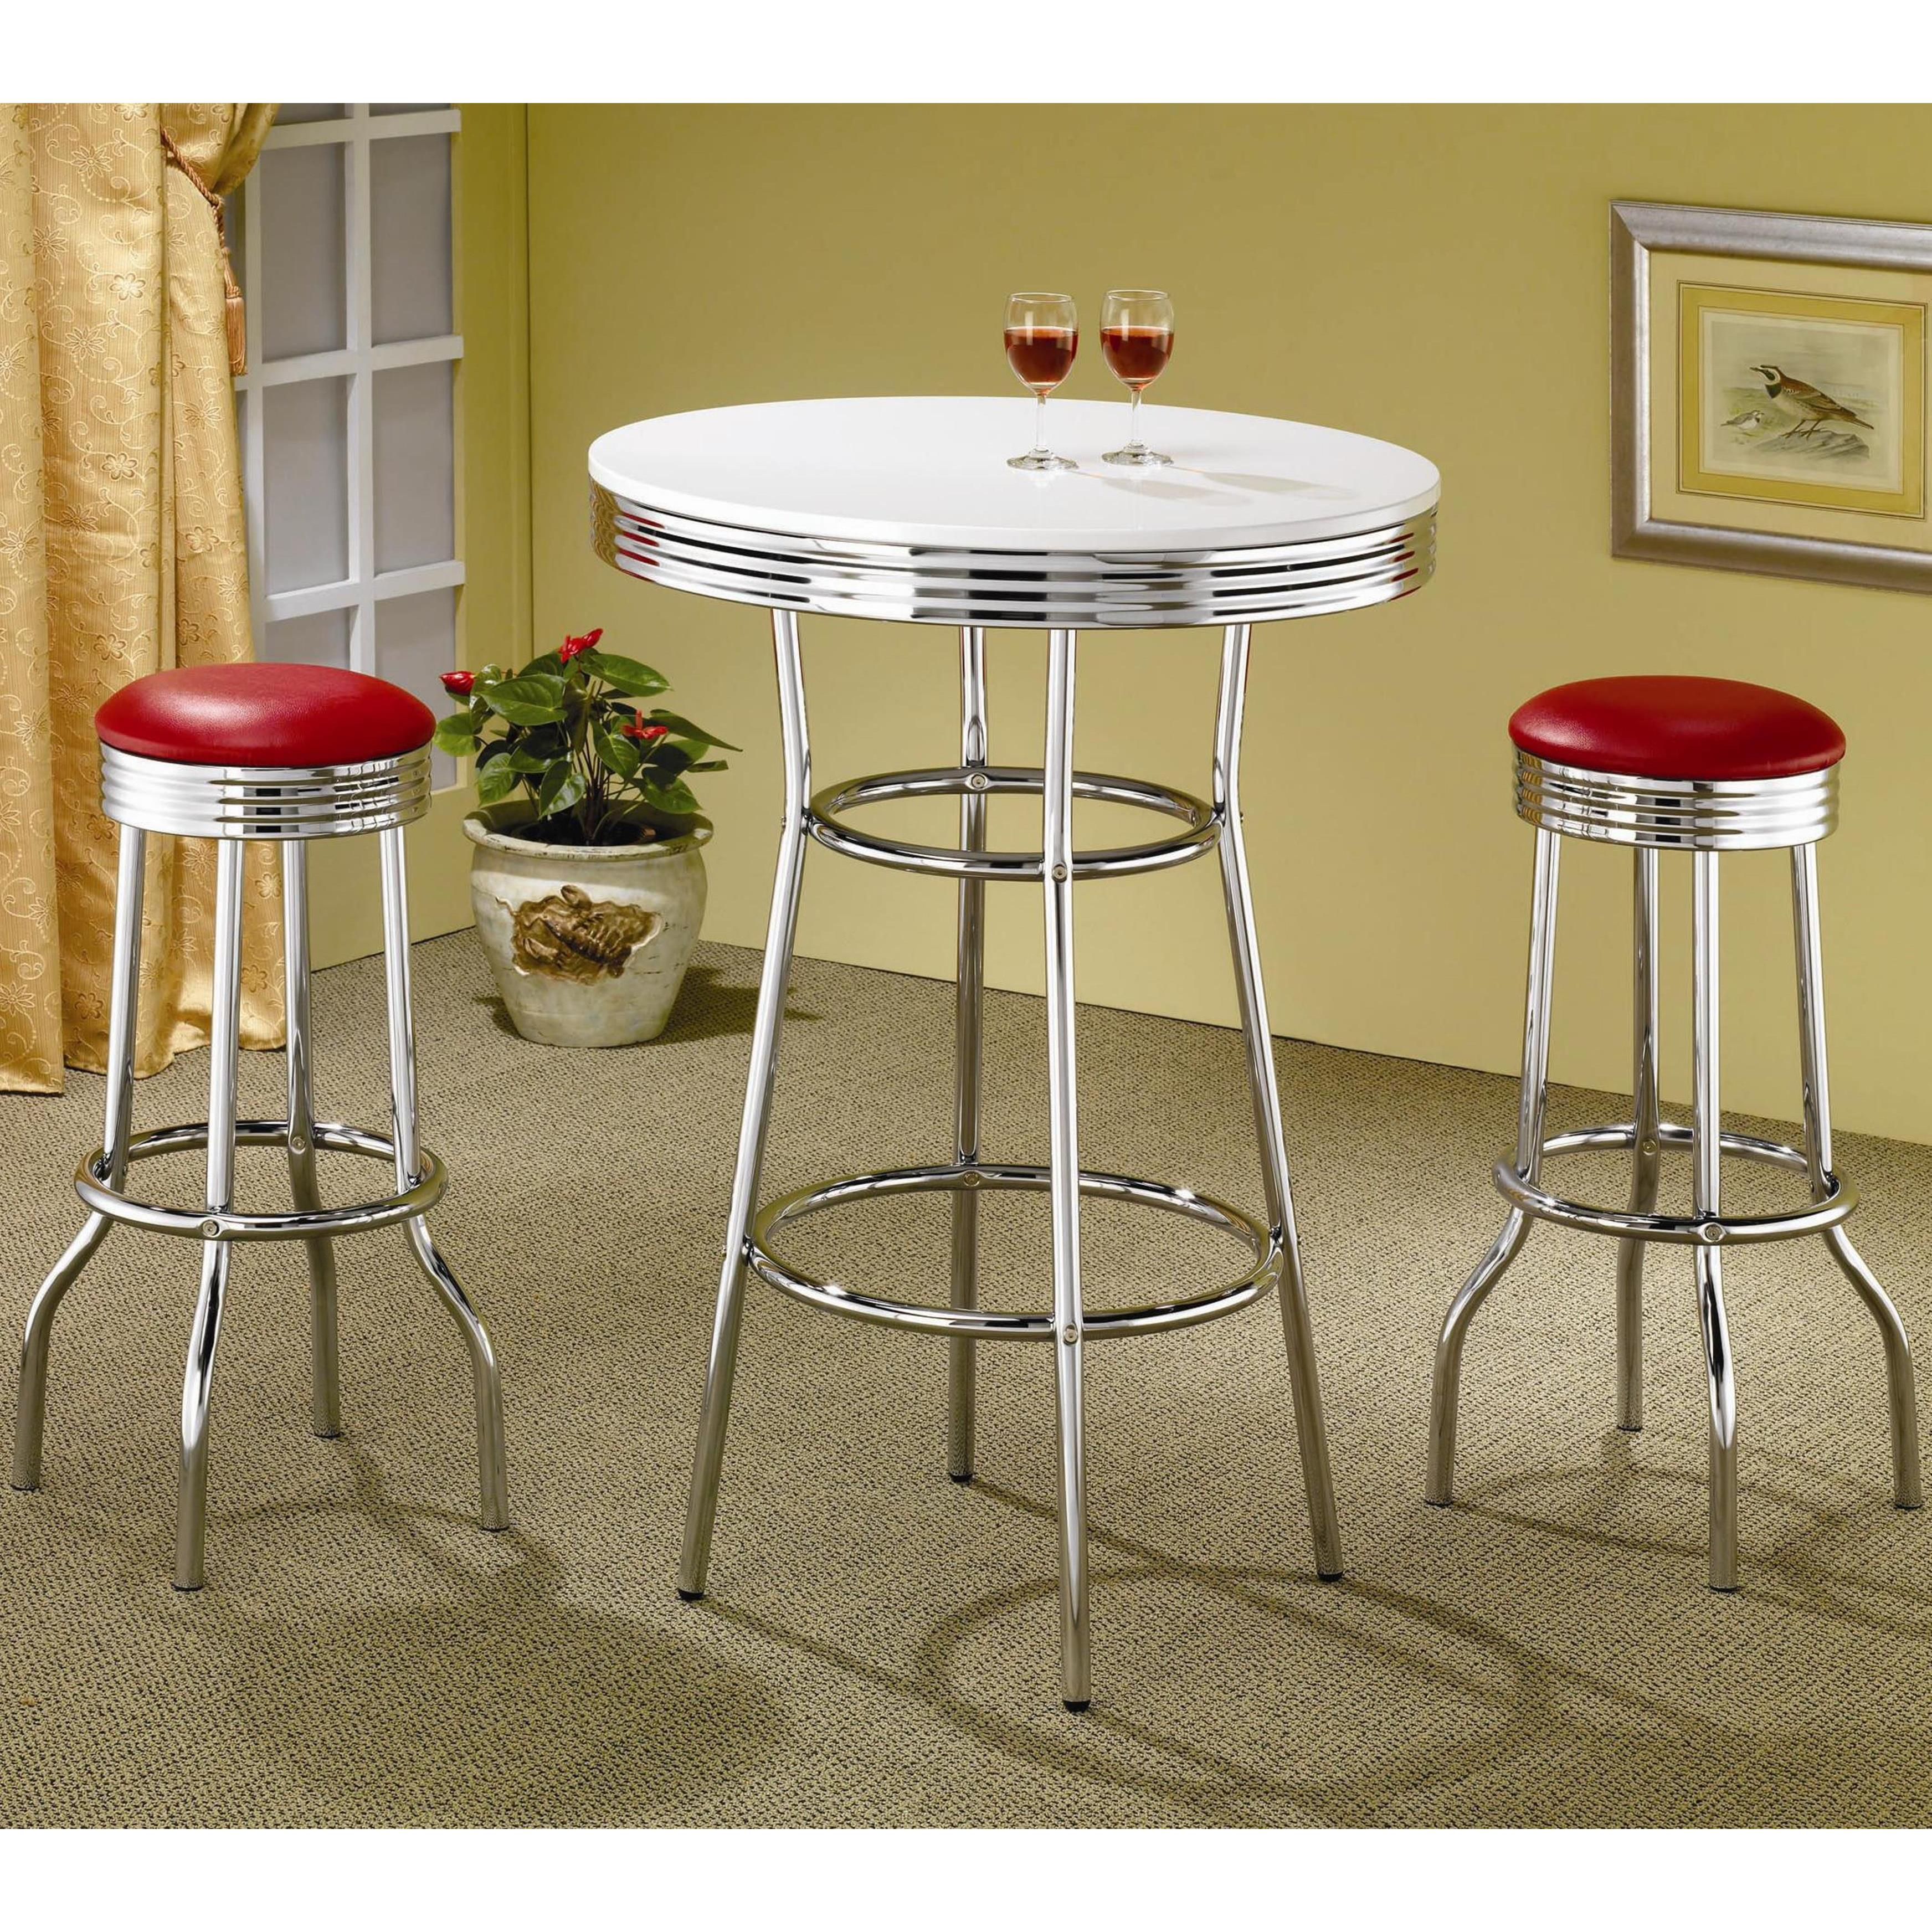 Retro 50s Pub Table And Chairs